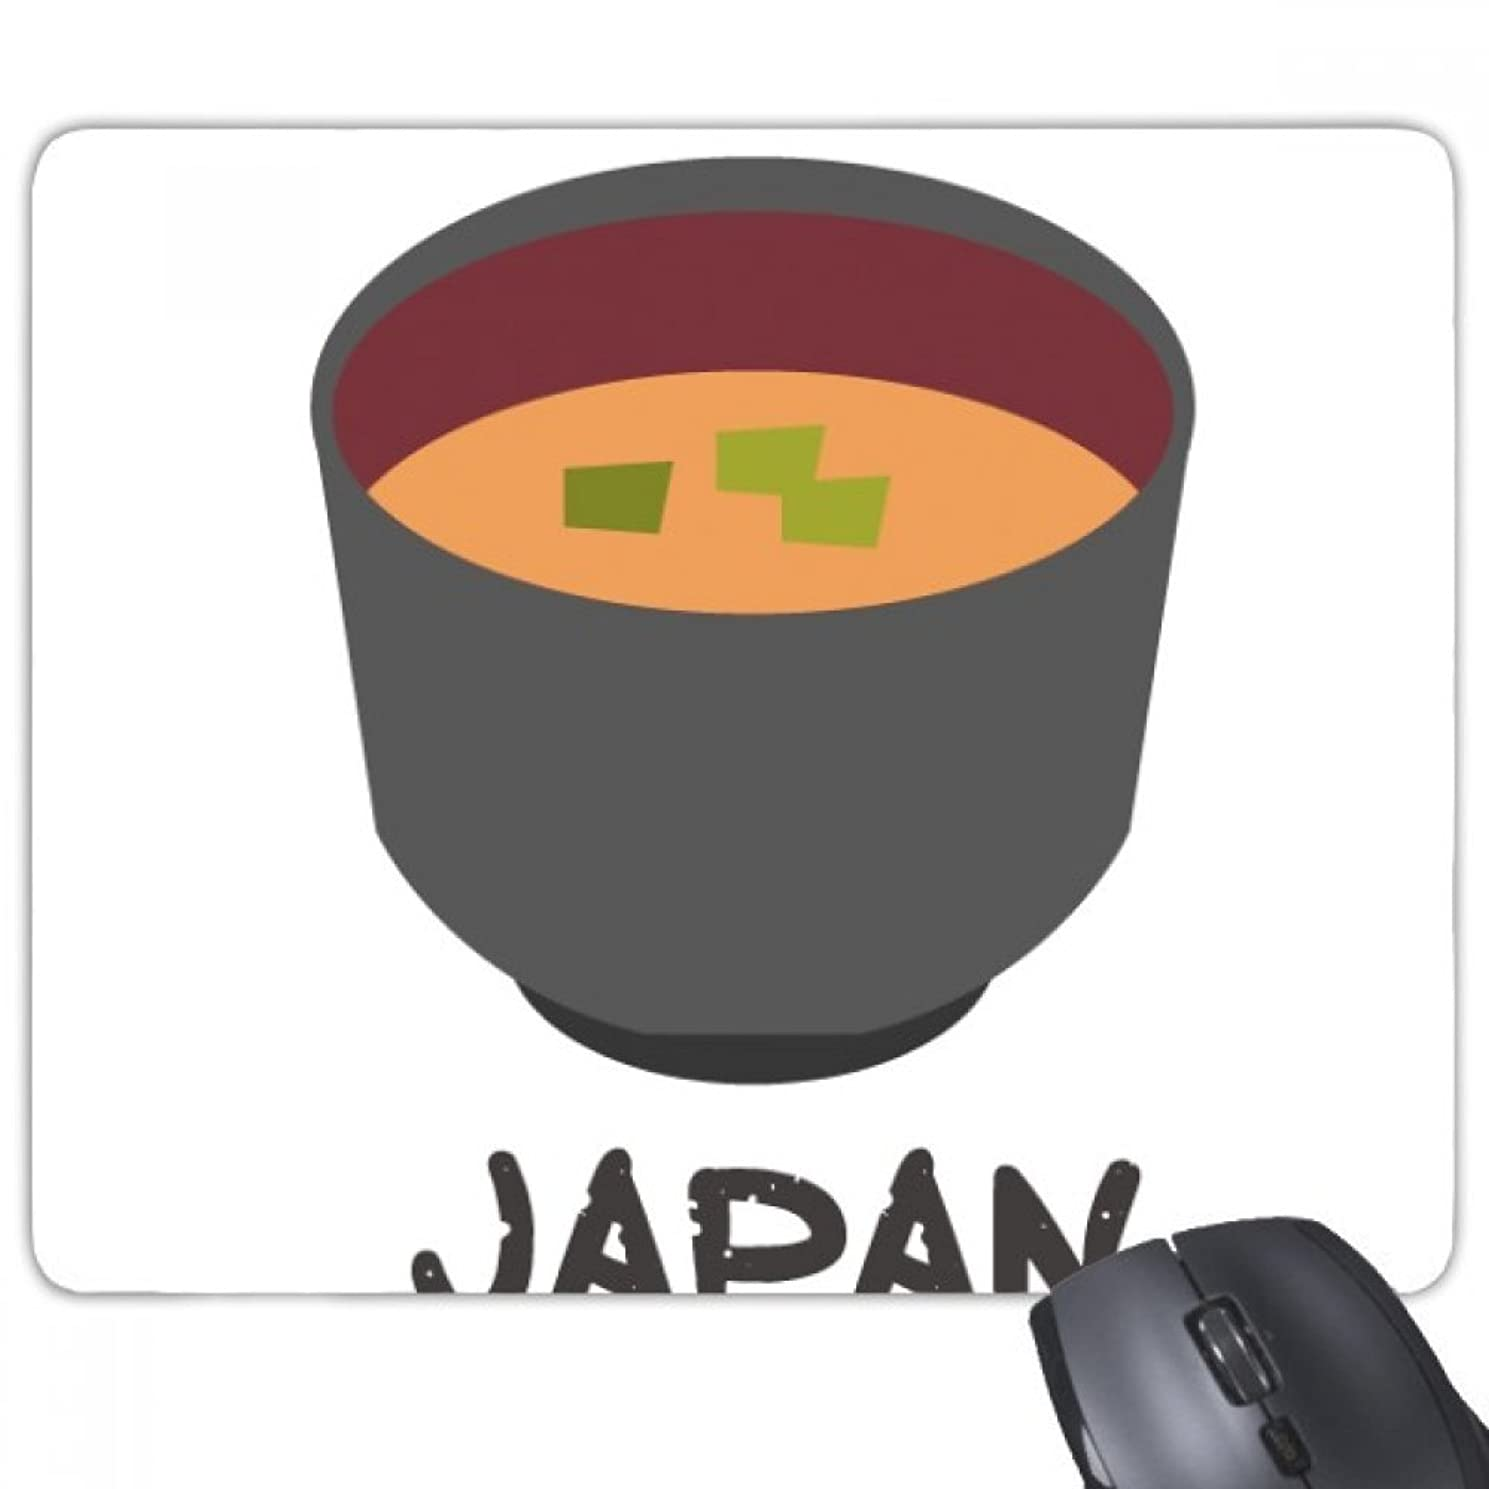 Traditional Japanese Tasty Miso Soup Mouse Pad Non-Slip Rubber Mousepad Game Office